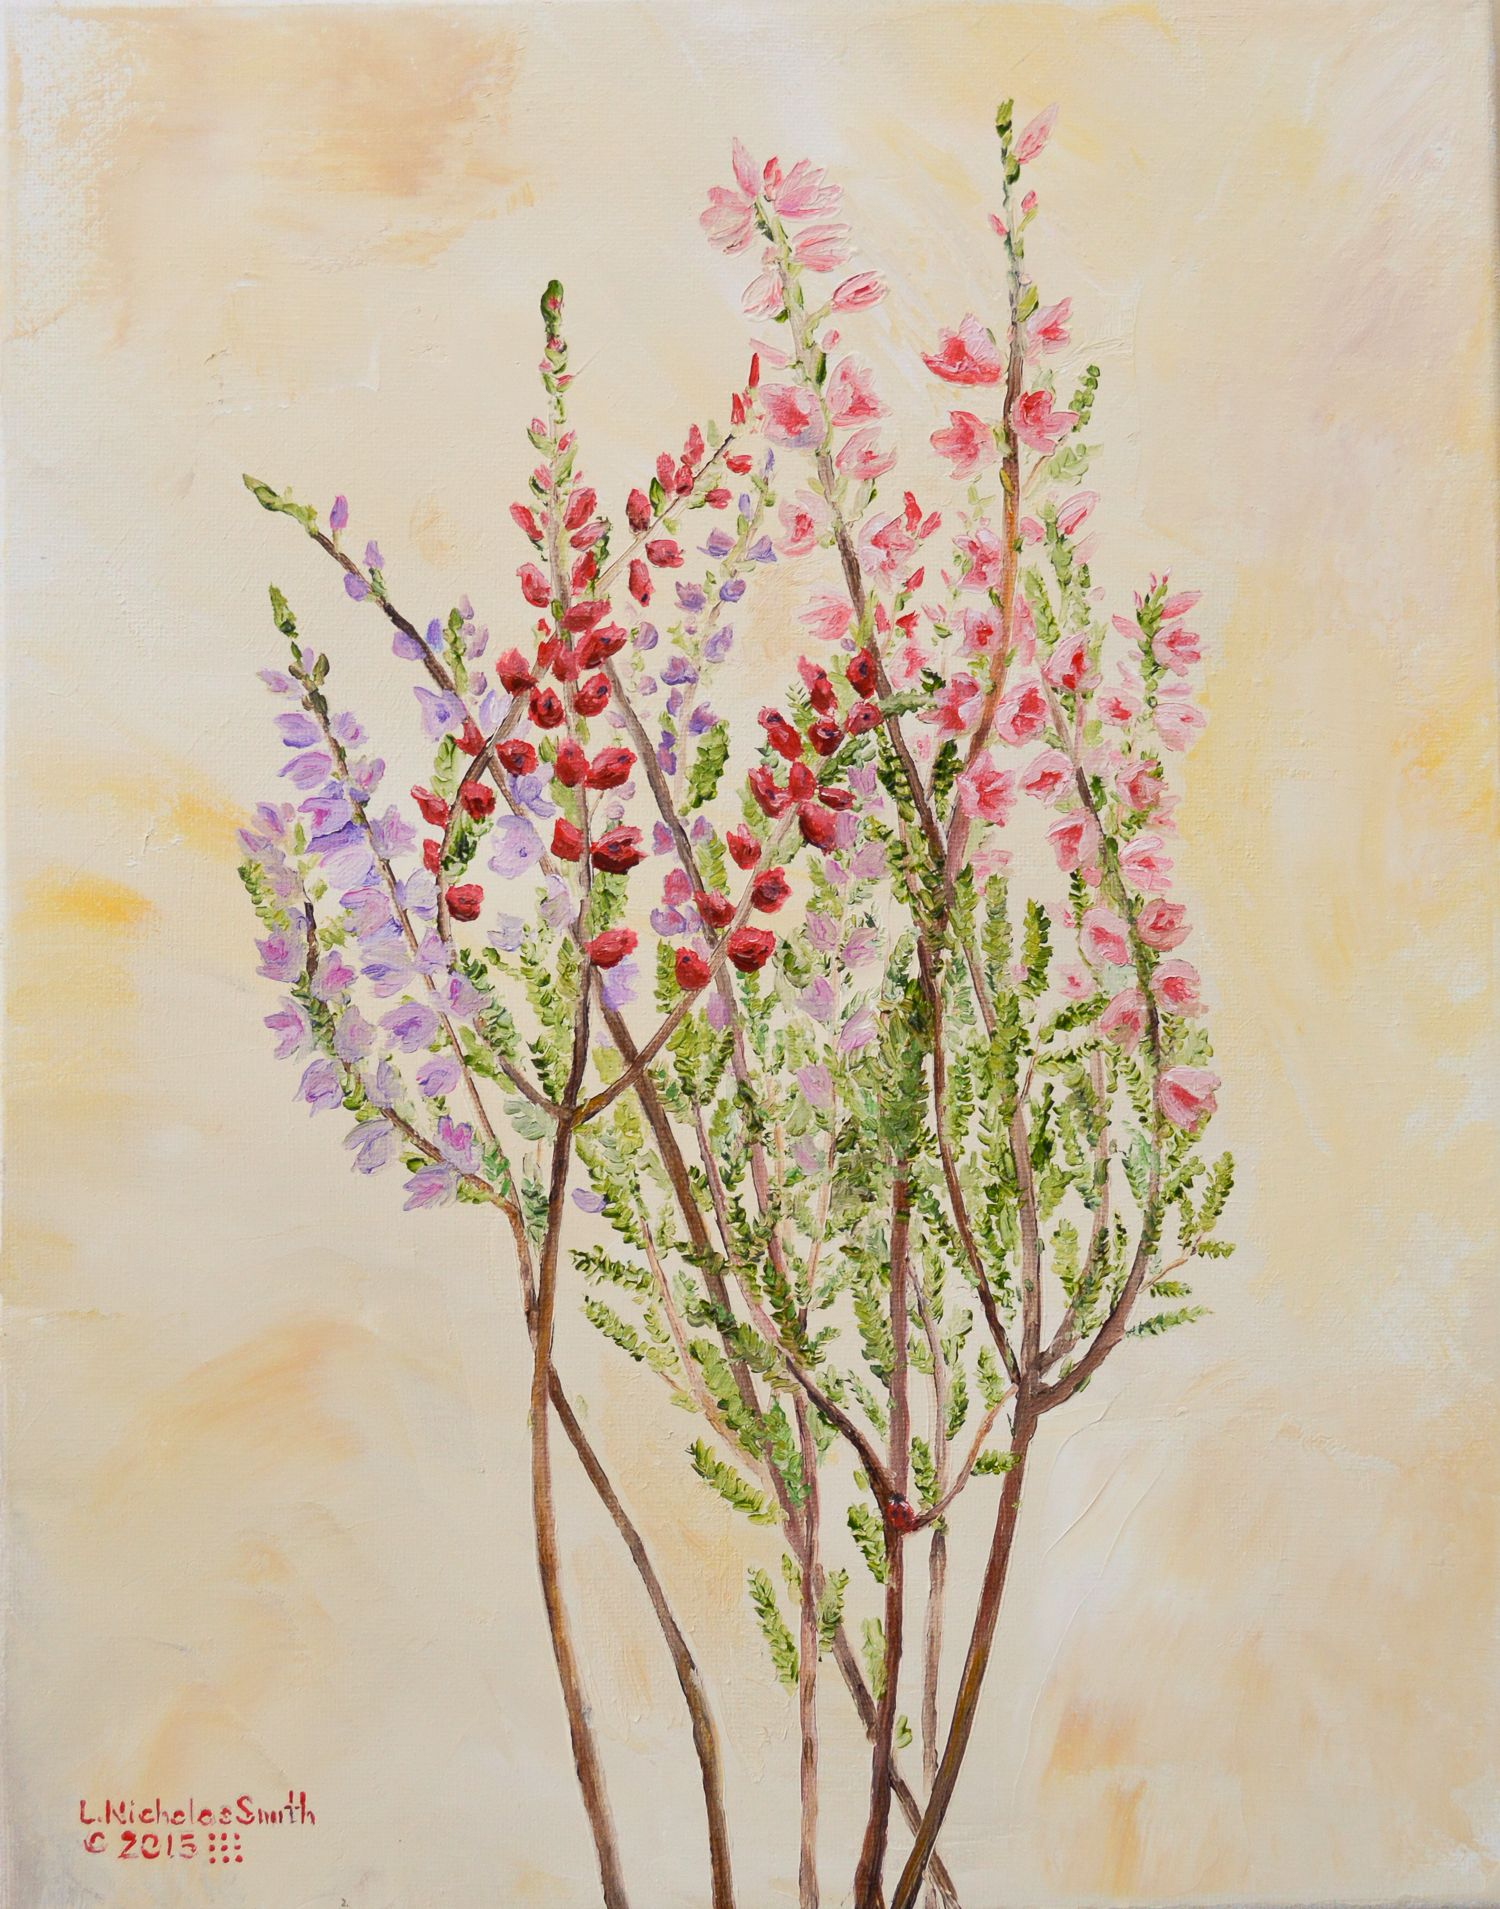 January Bouquet 11 X 14 Oil On Canvas C L Nicholas Smith Botanical Assortment Of Heather Flowers With Bouquet Series Art Oil On Canvas Oil Painting